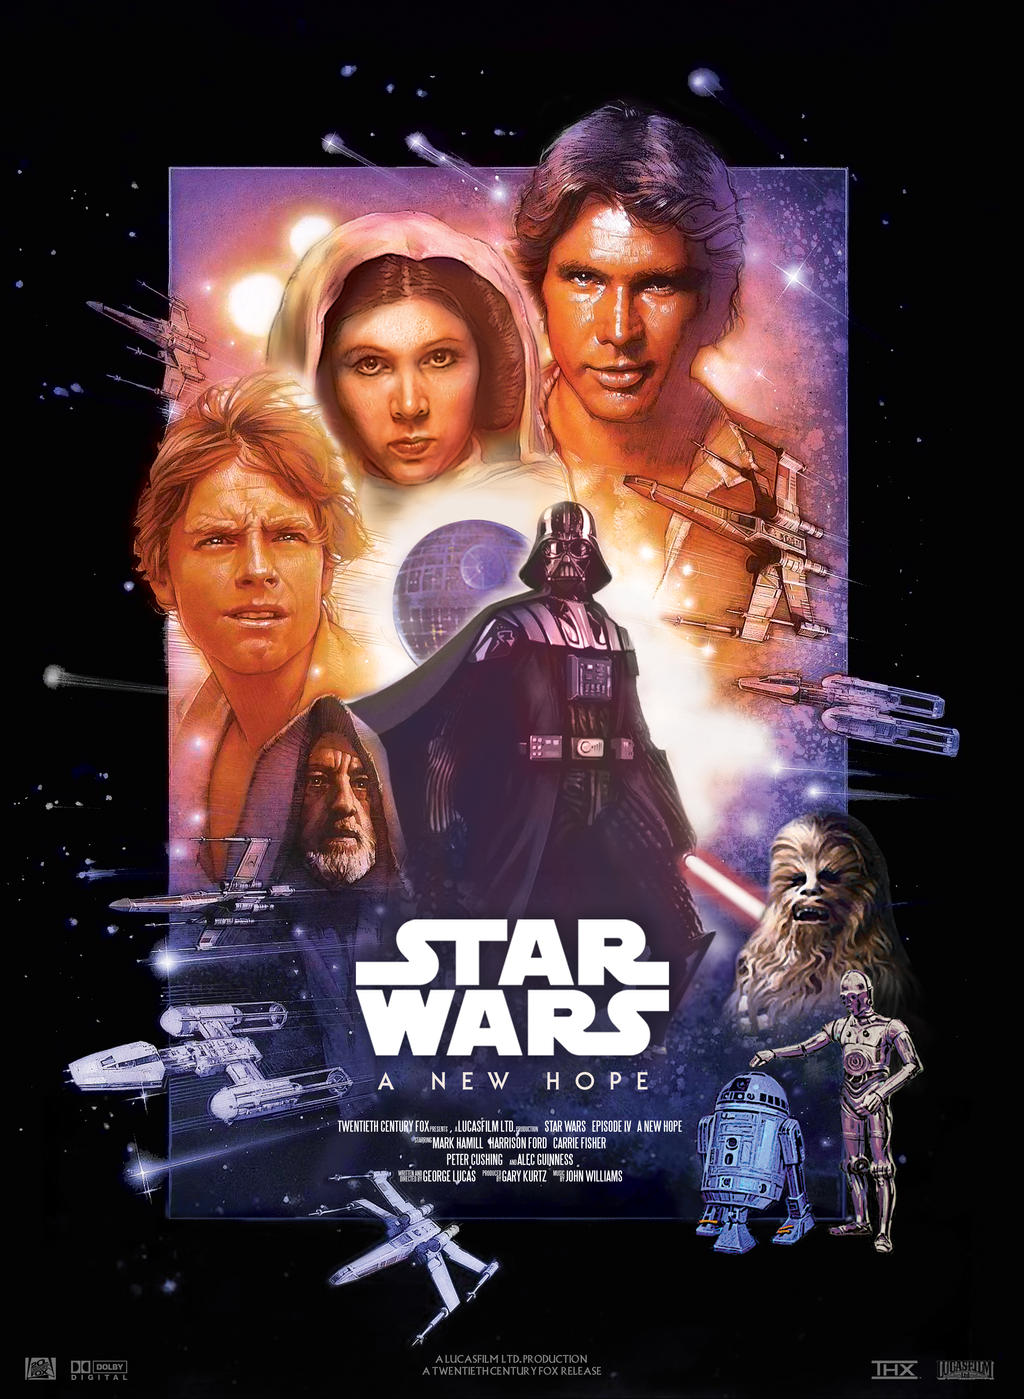 Star Wars Iv A New Hope Movie Poster By Nei1b On Deviantart